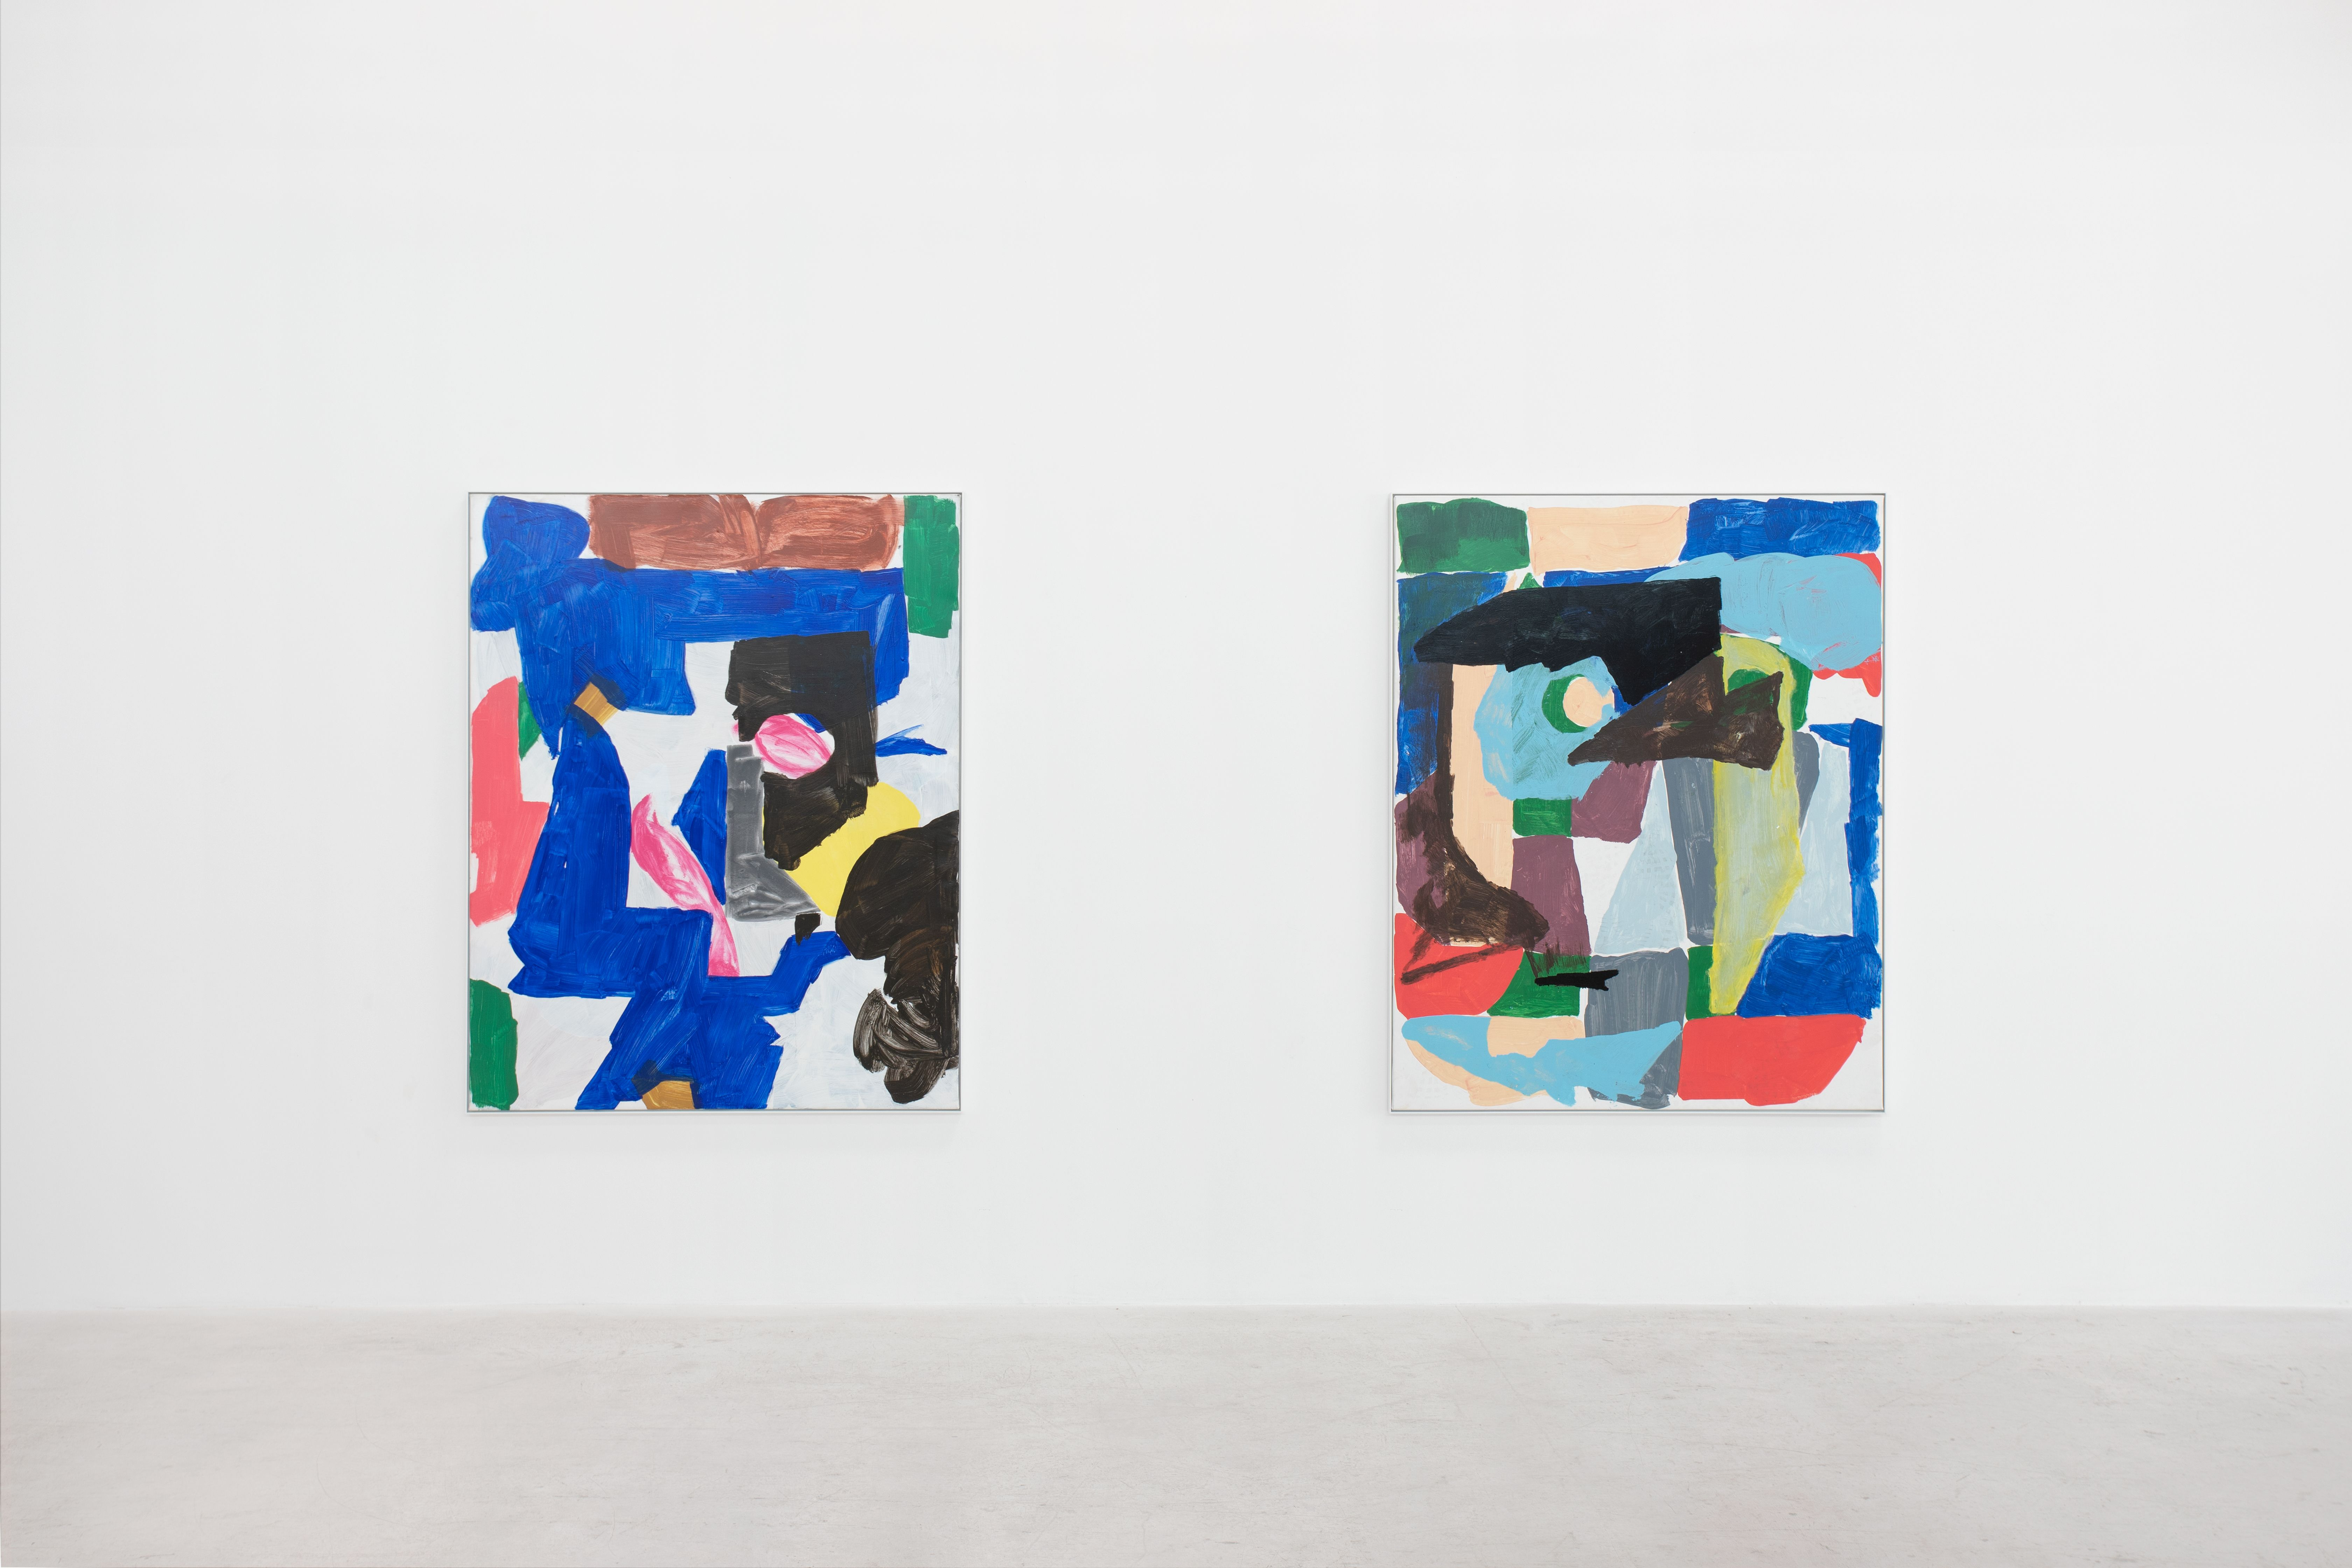 """""""Boat Races and Fizzogs"""", solo exhibition by Kes Richardson. Installation view at L21. Photography by Natasha Lebedeva"""